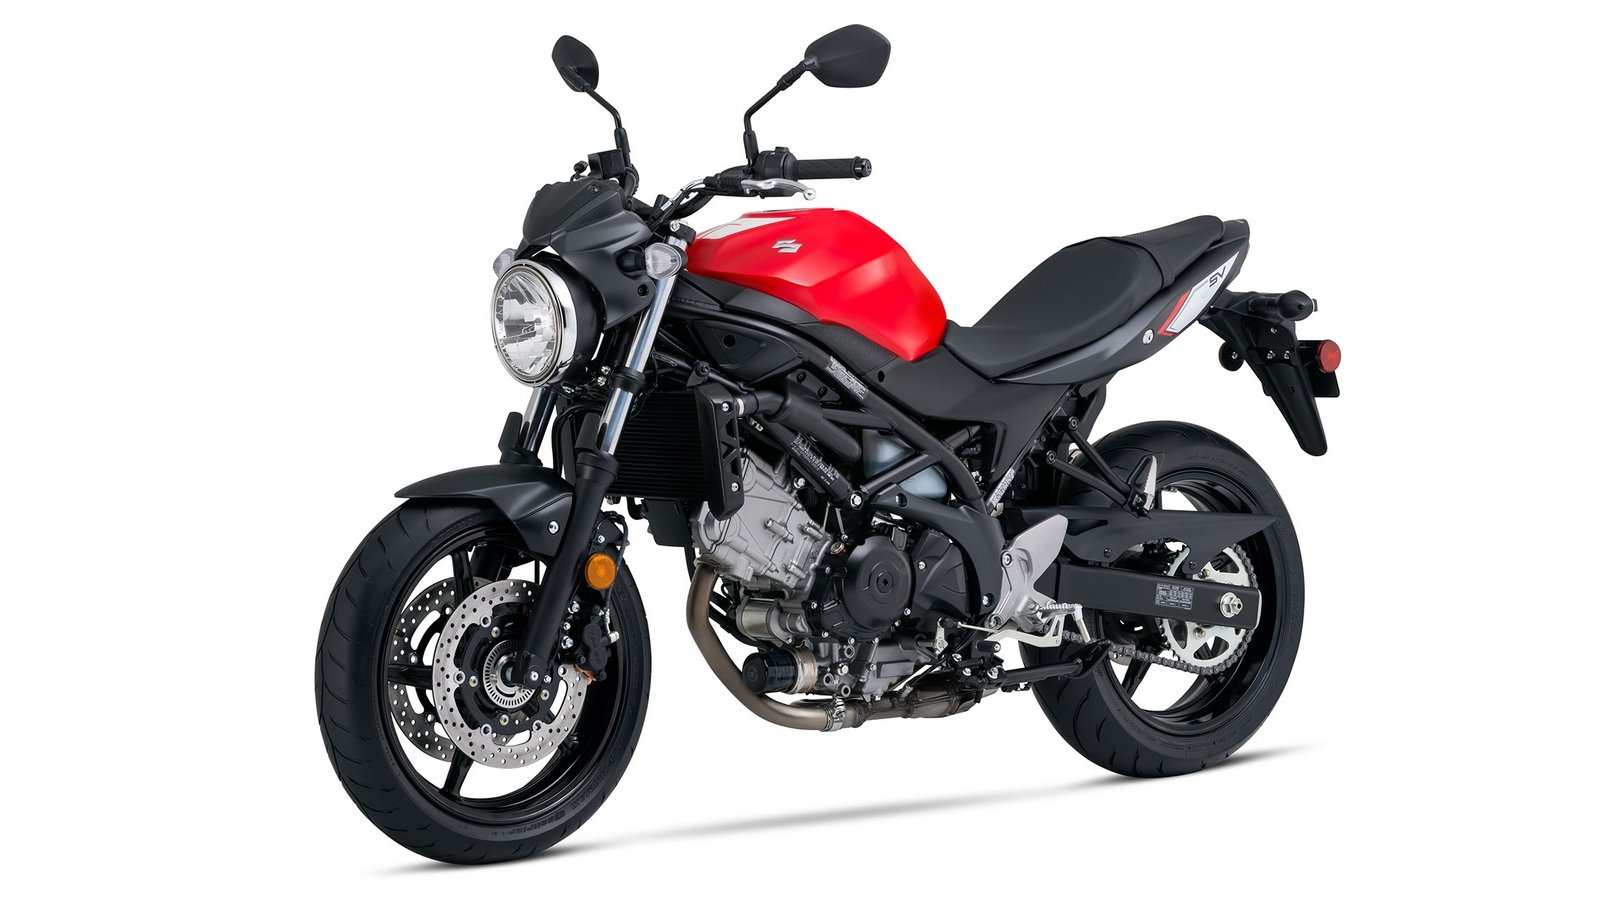 2017 suzuki sv650 abs picture 664019 motorcycle review. Black Bedroom Furniture Sets. Home Design Ideas